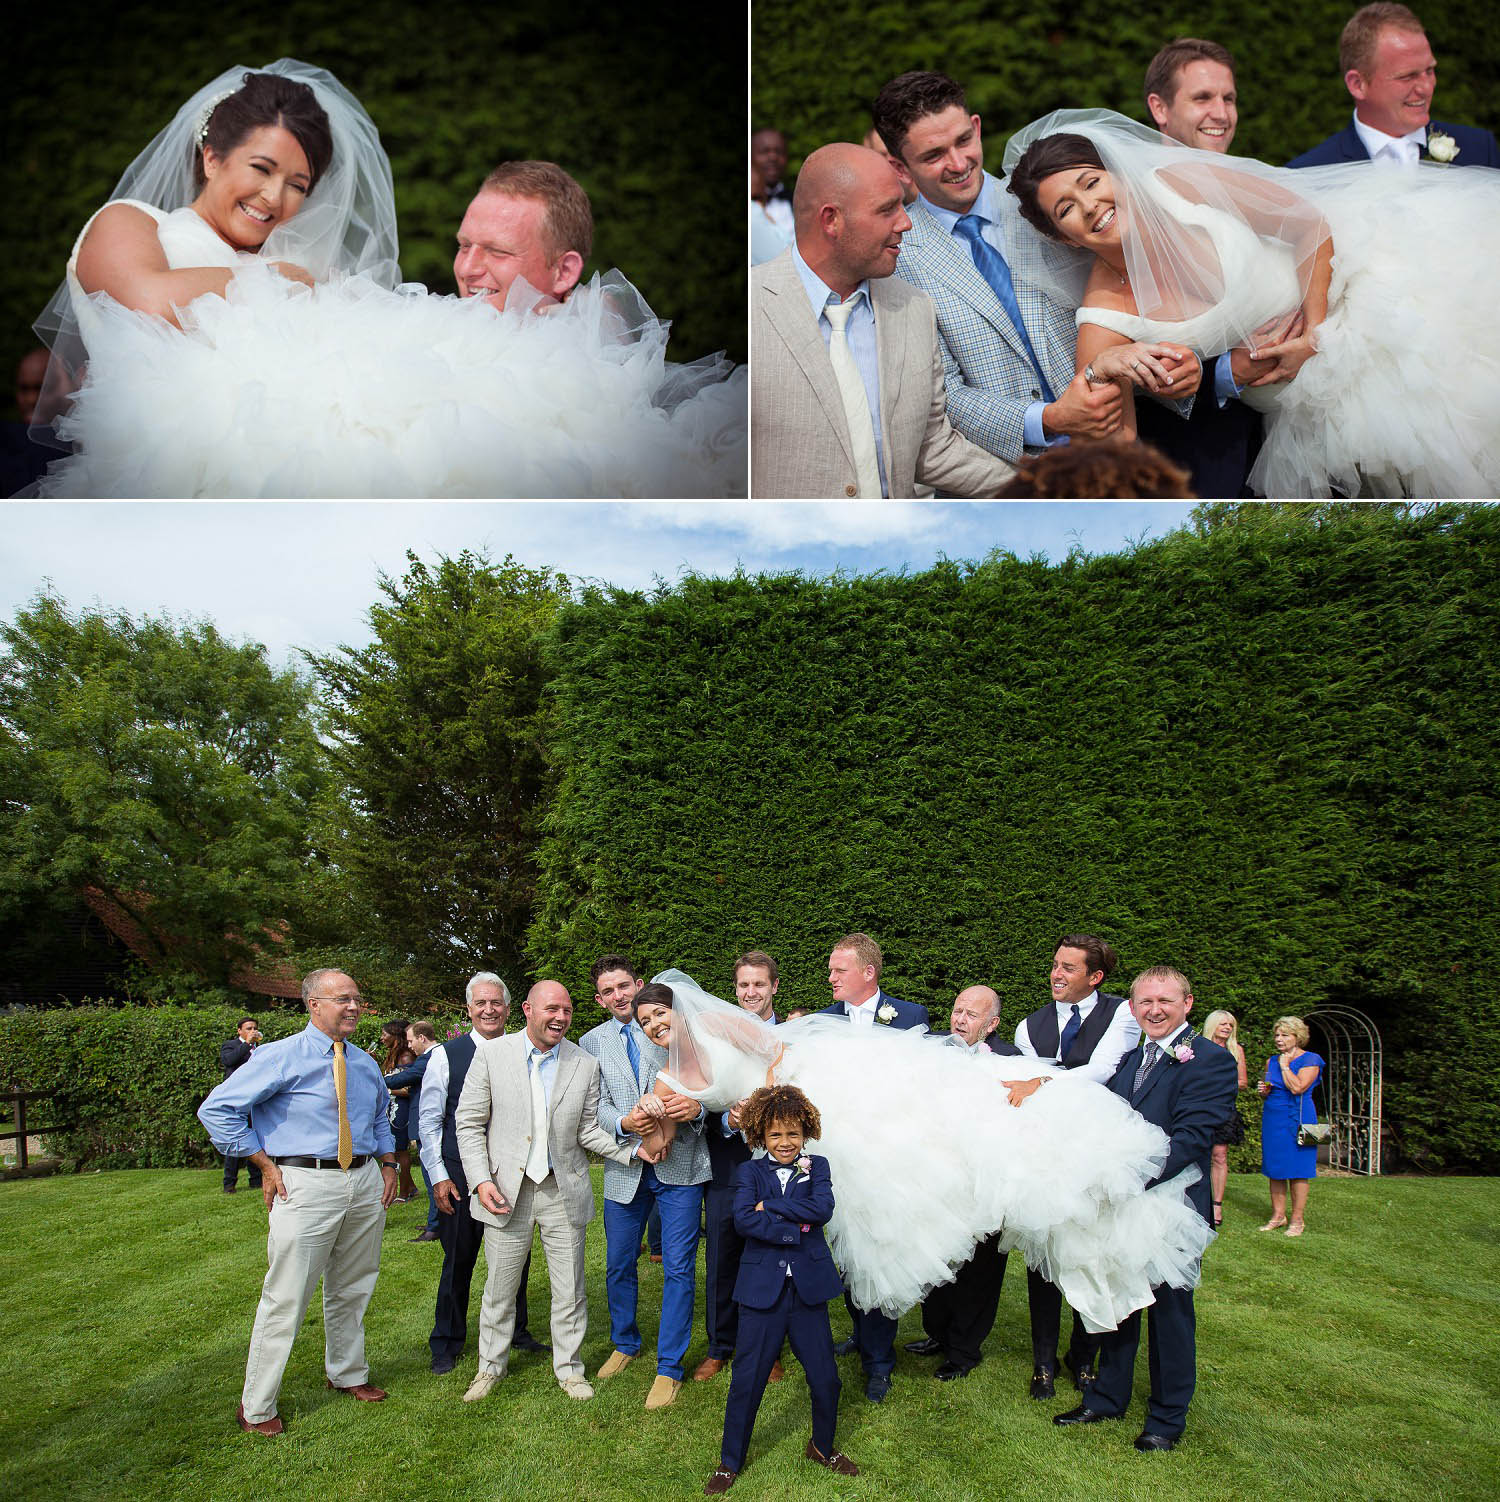 Wedding at Old Brook Barn - Anesta Broad Photography